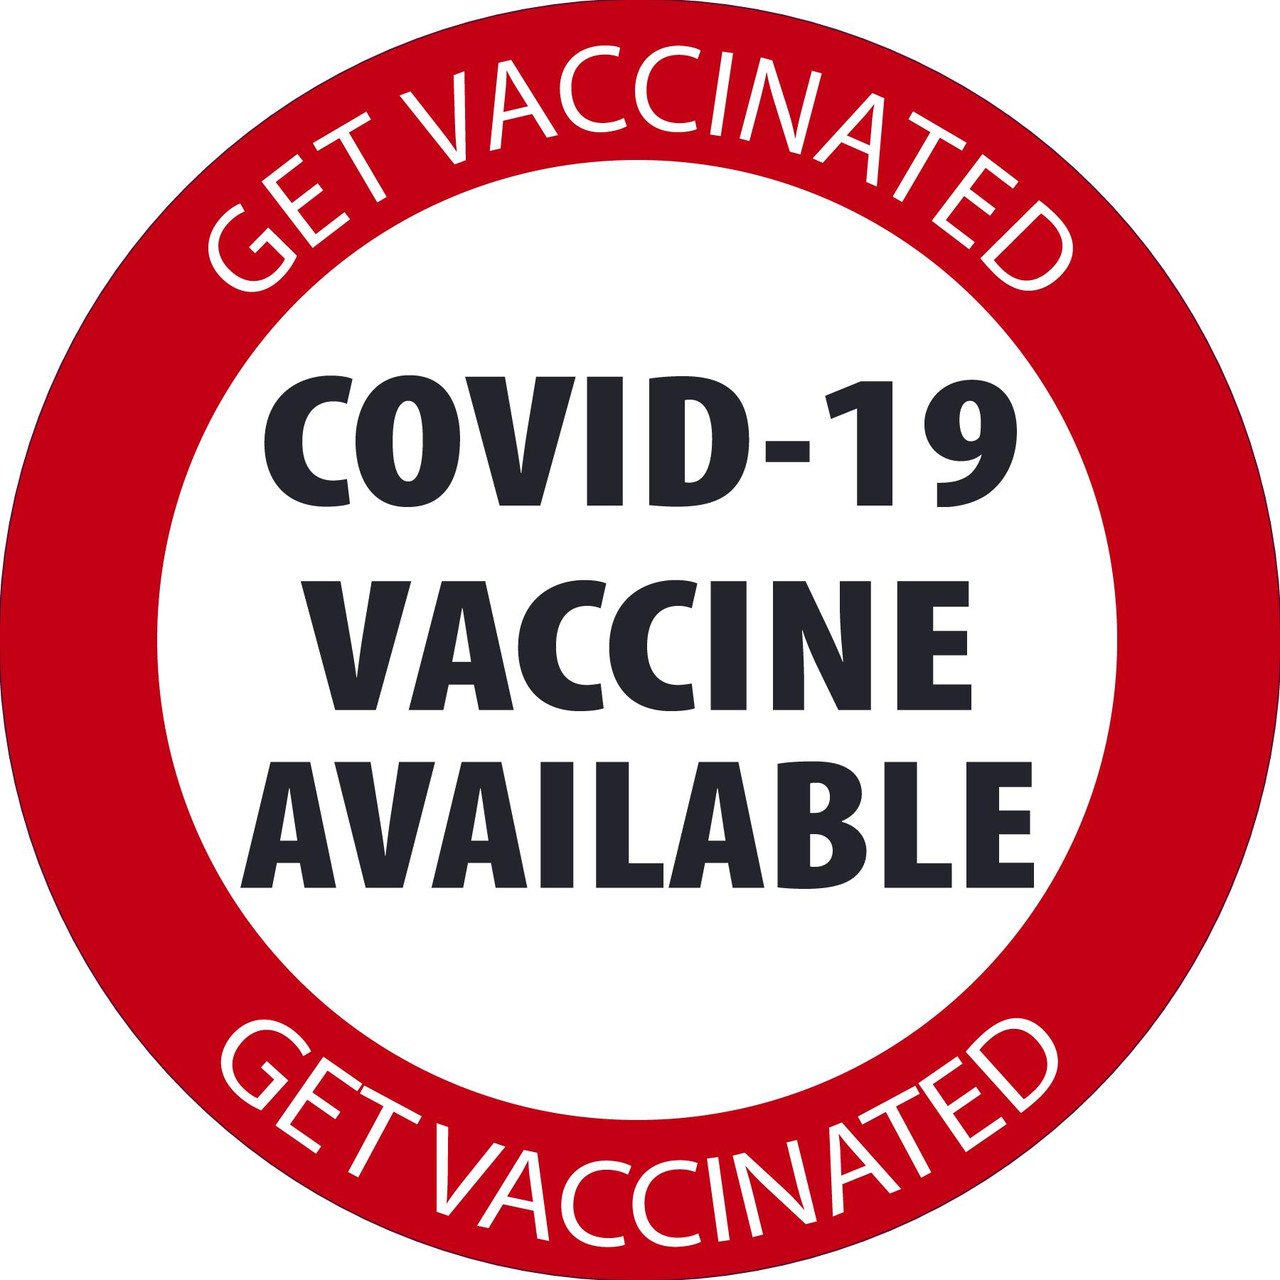 """Facility Label, Covid-19 Vaccinations Available, 6"""" x 6"""", Pressure-sensitive Adhesive, 5/pack"""